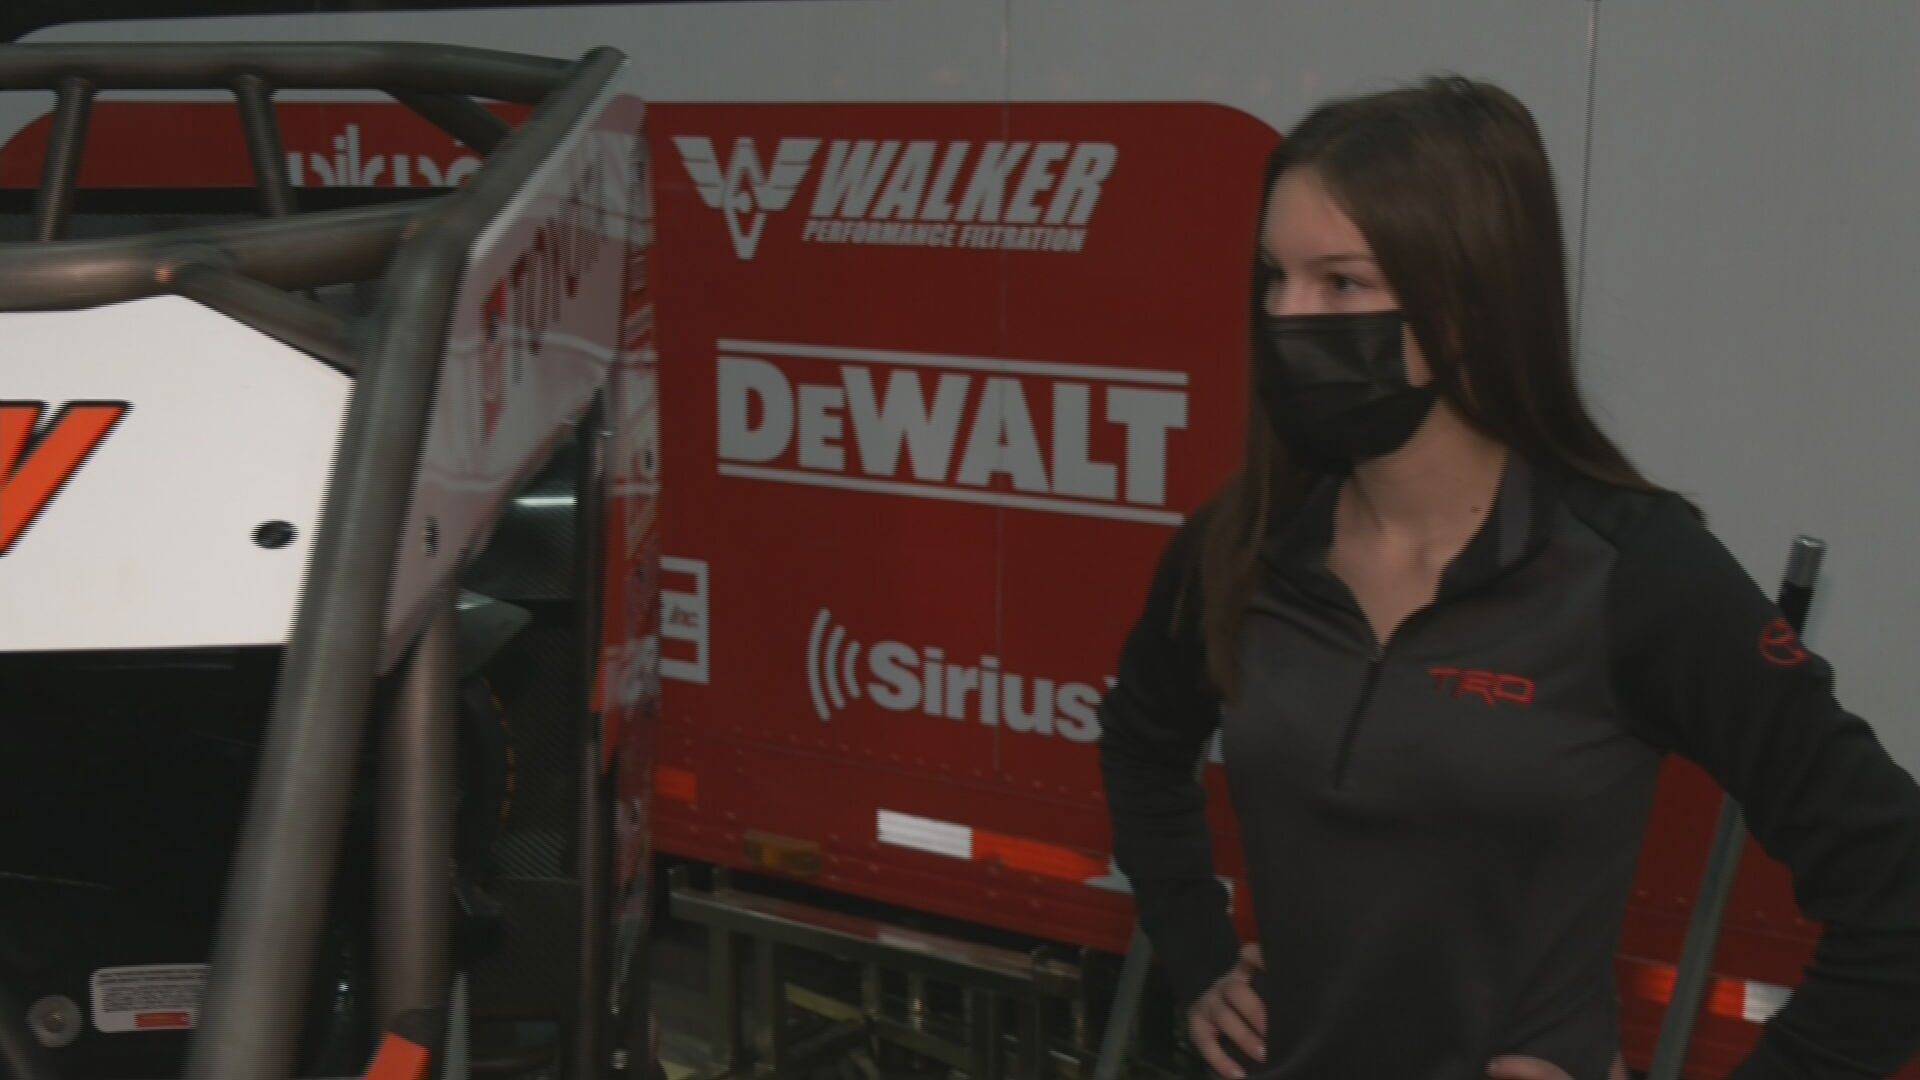 Armed With Big Dreams, Muskogee Woman Stays Dialed In At Chili Bowl